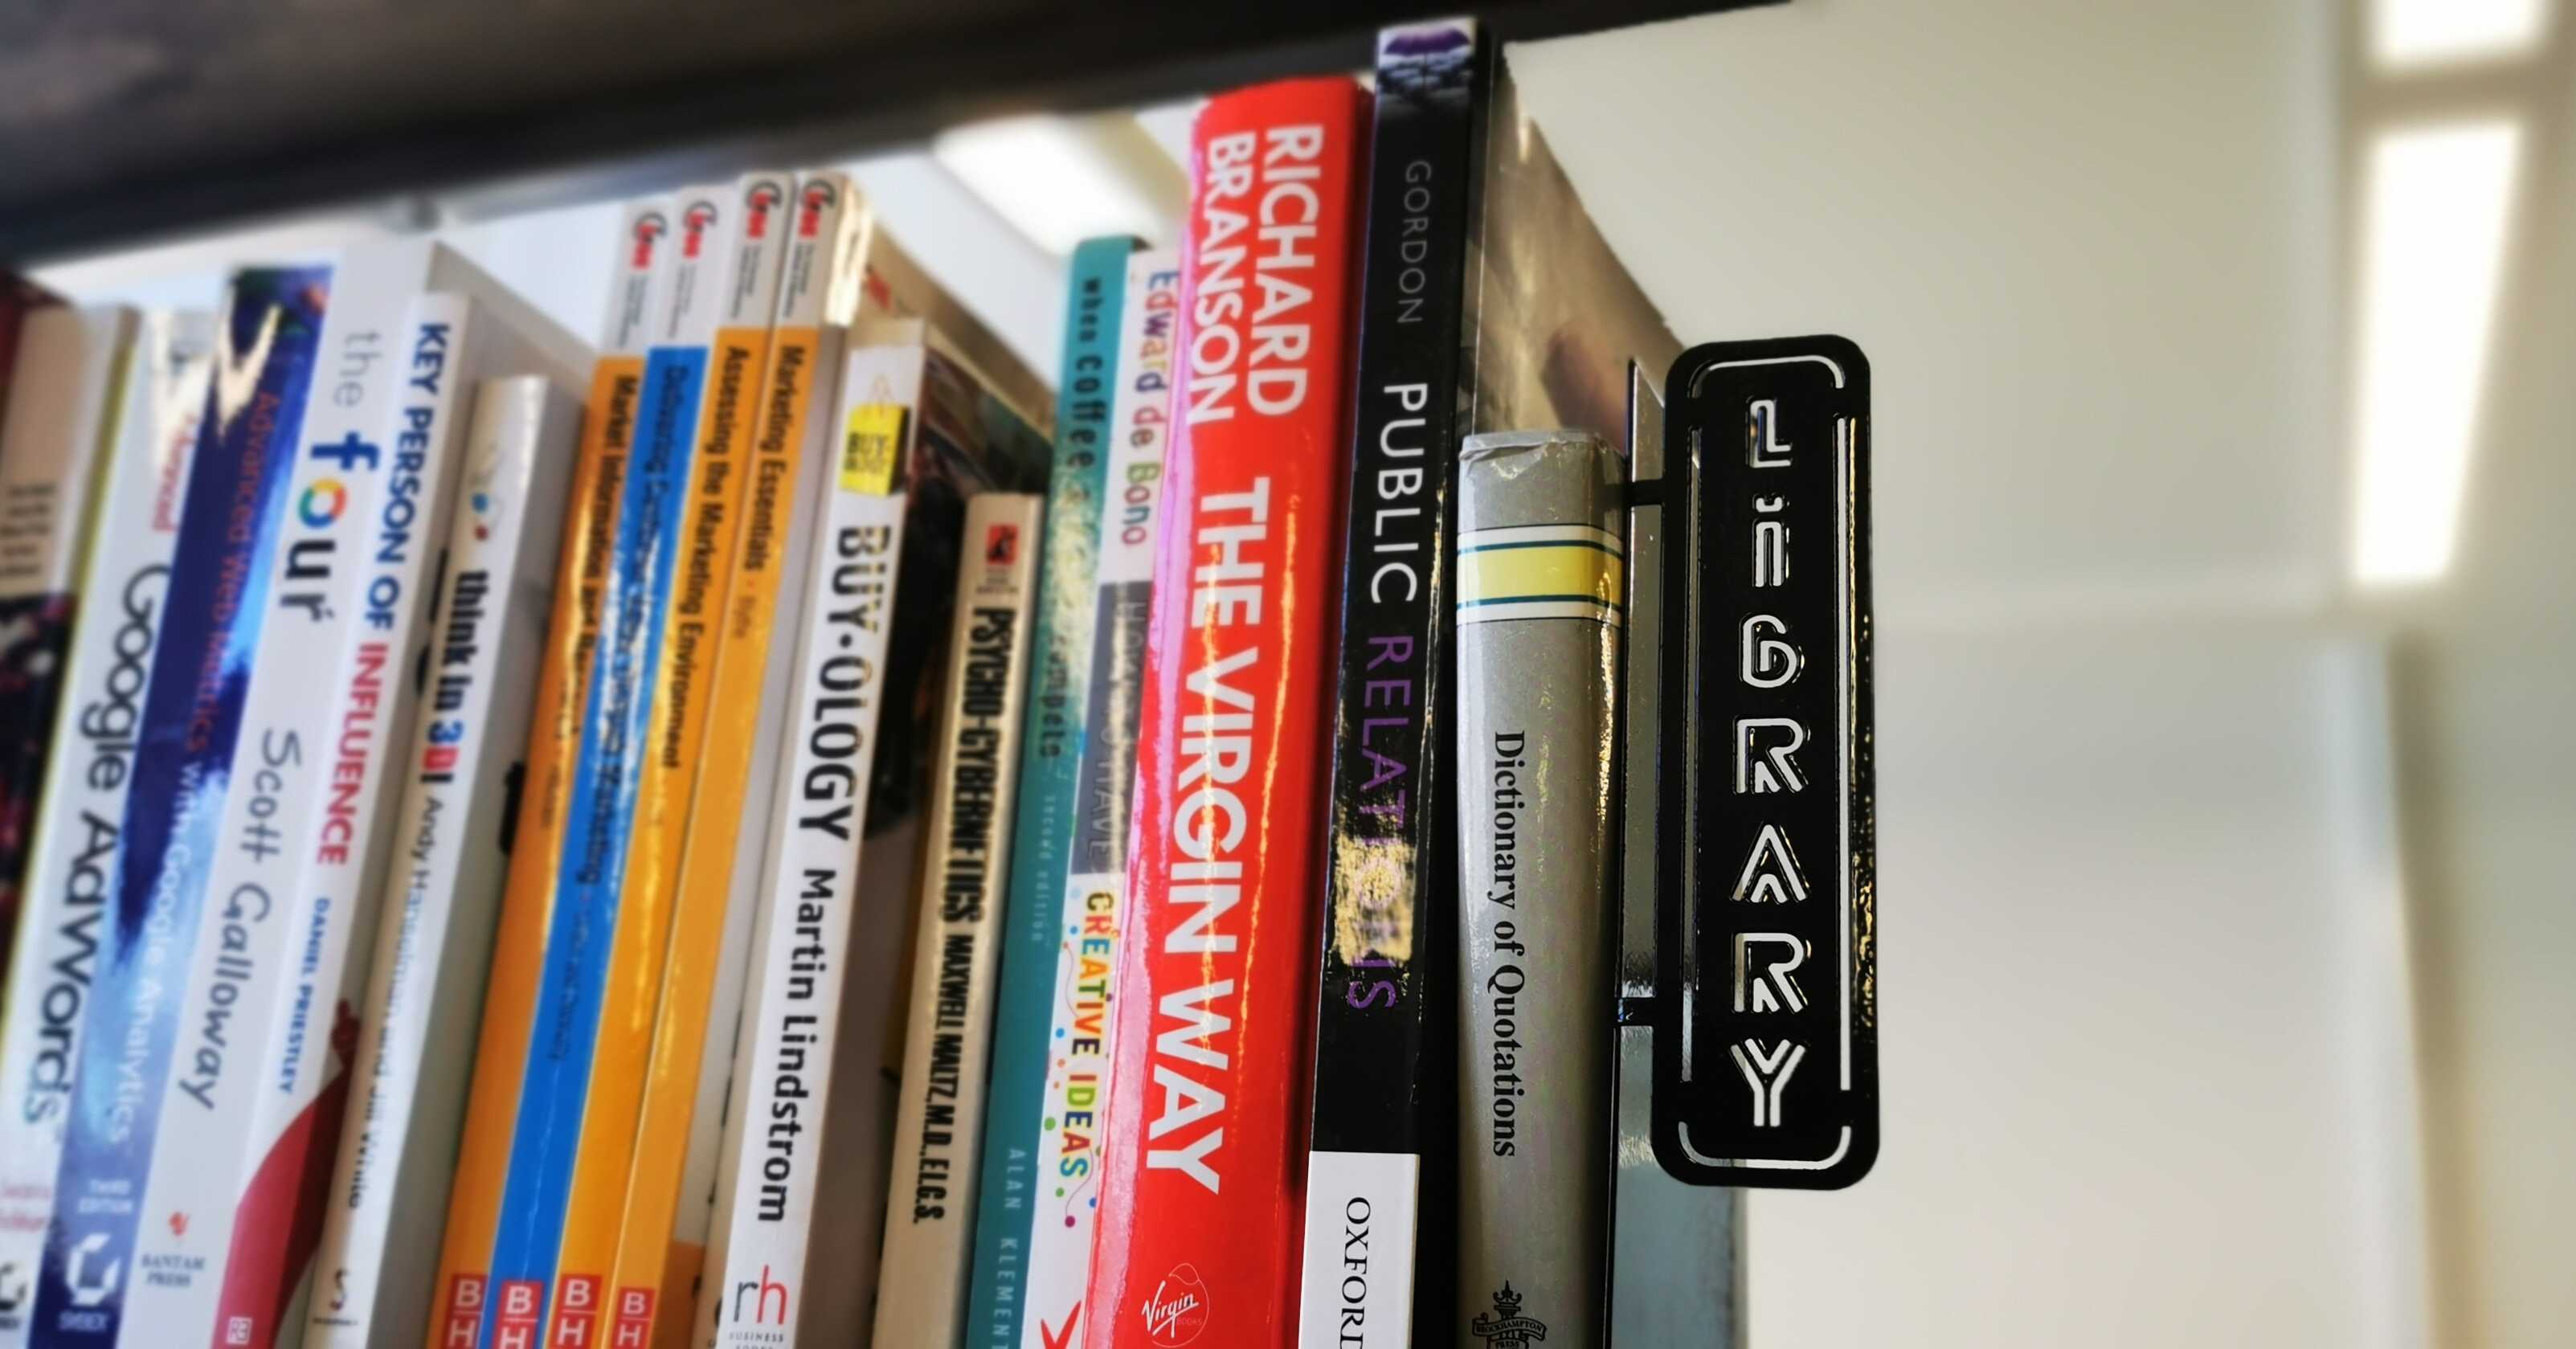 10 of the best inbound marketing books everyone should read